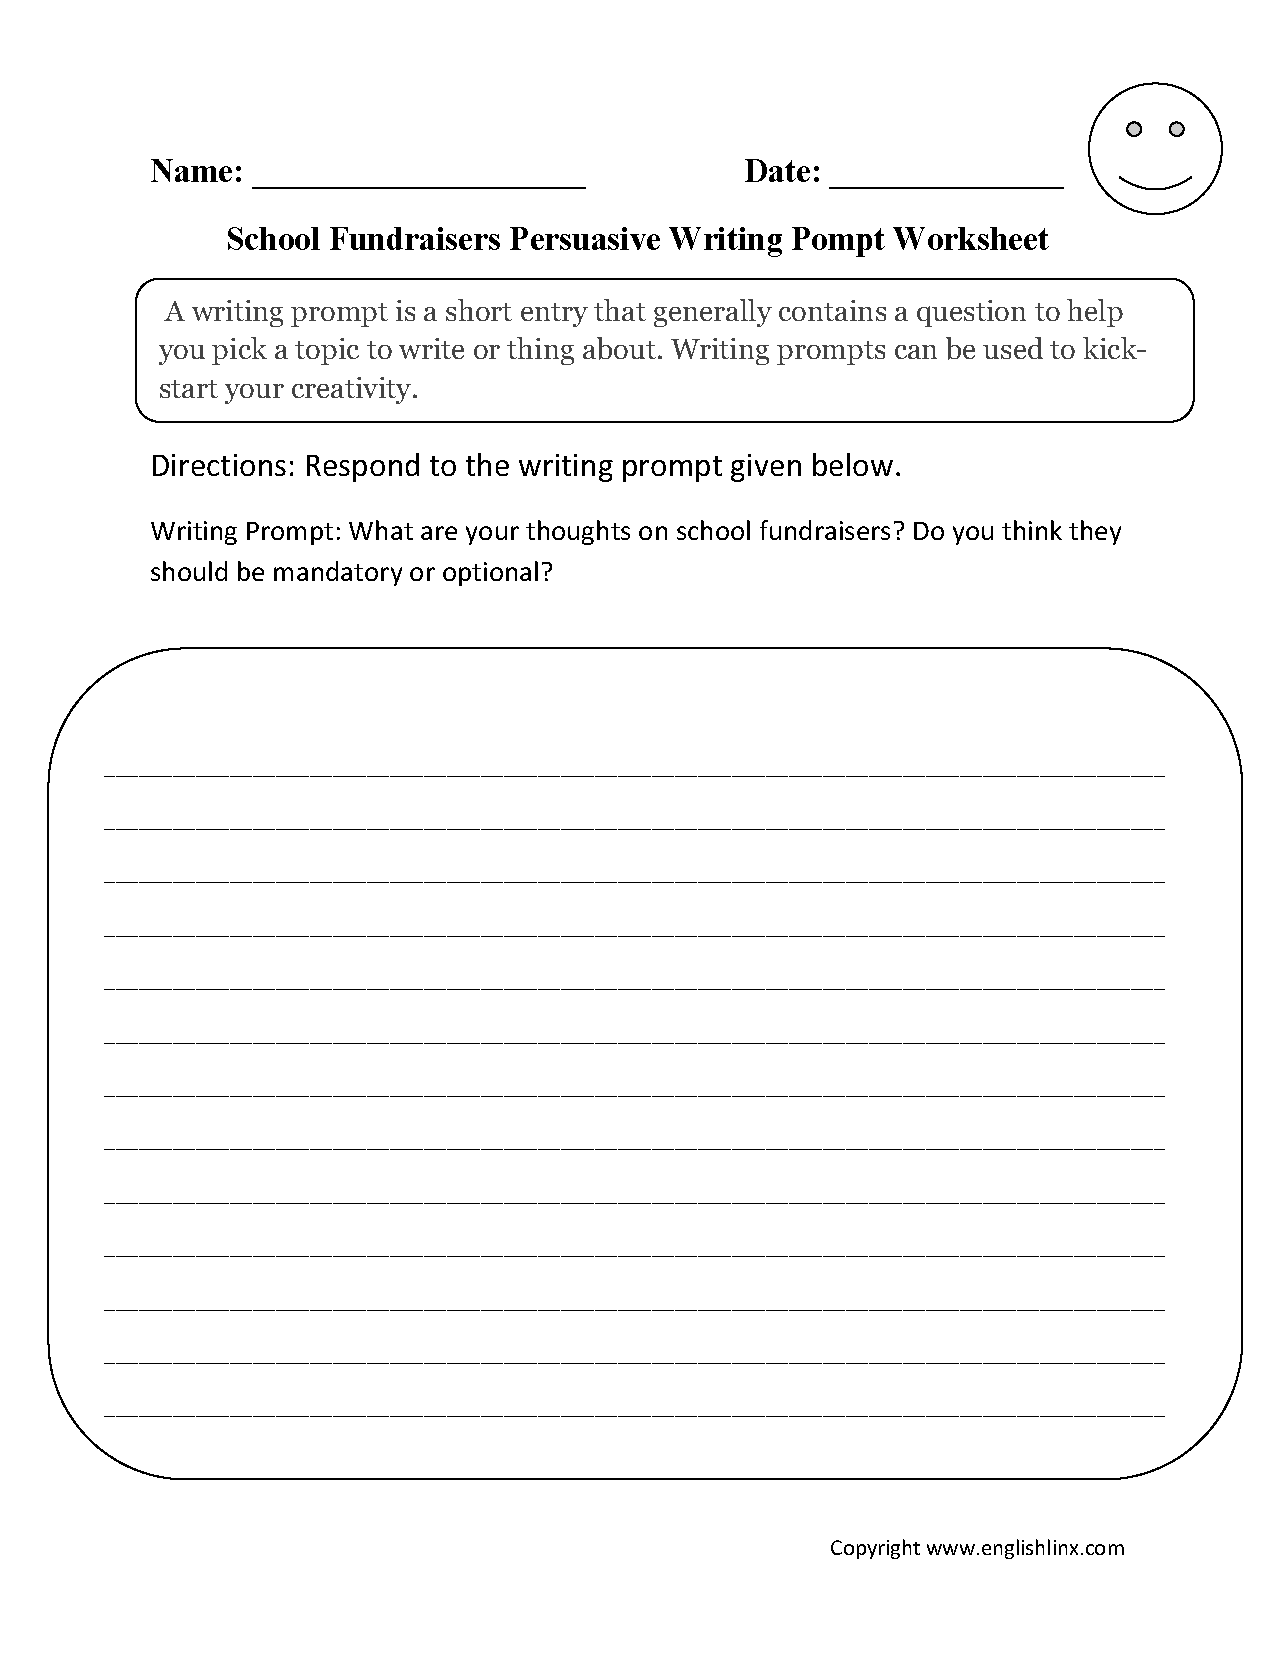 Writing Prompts Worksheets | Persuasive Writing Prompts